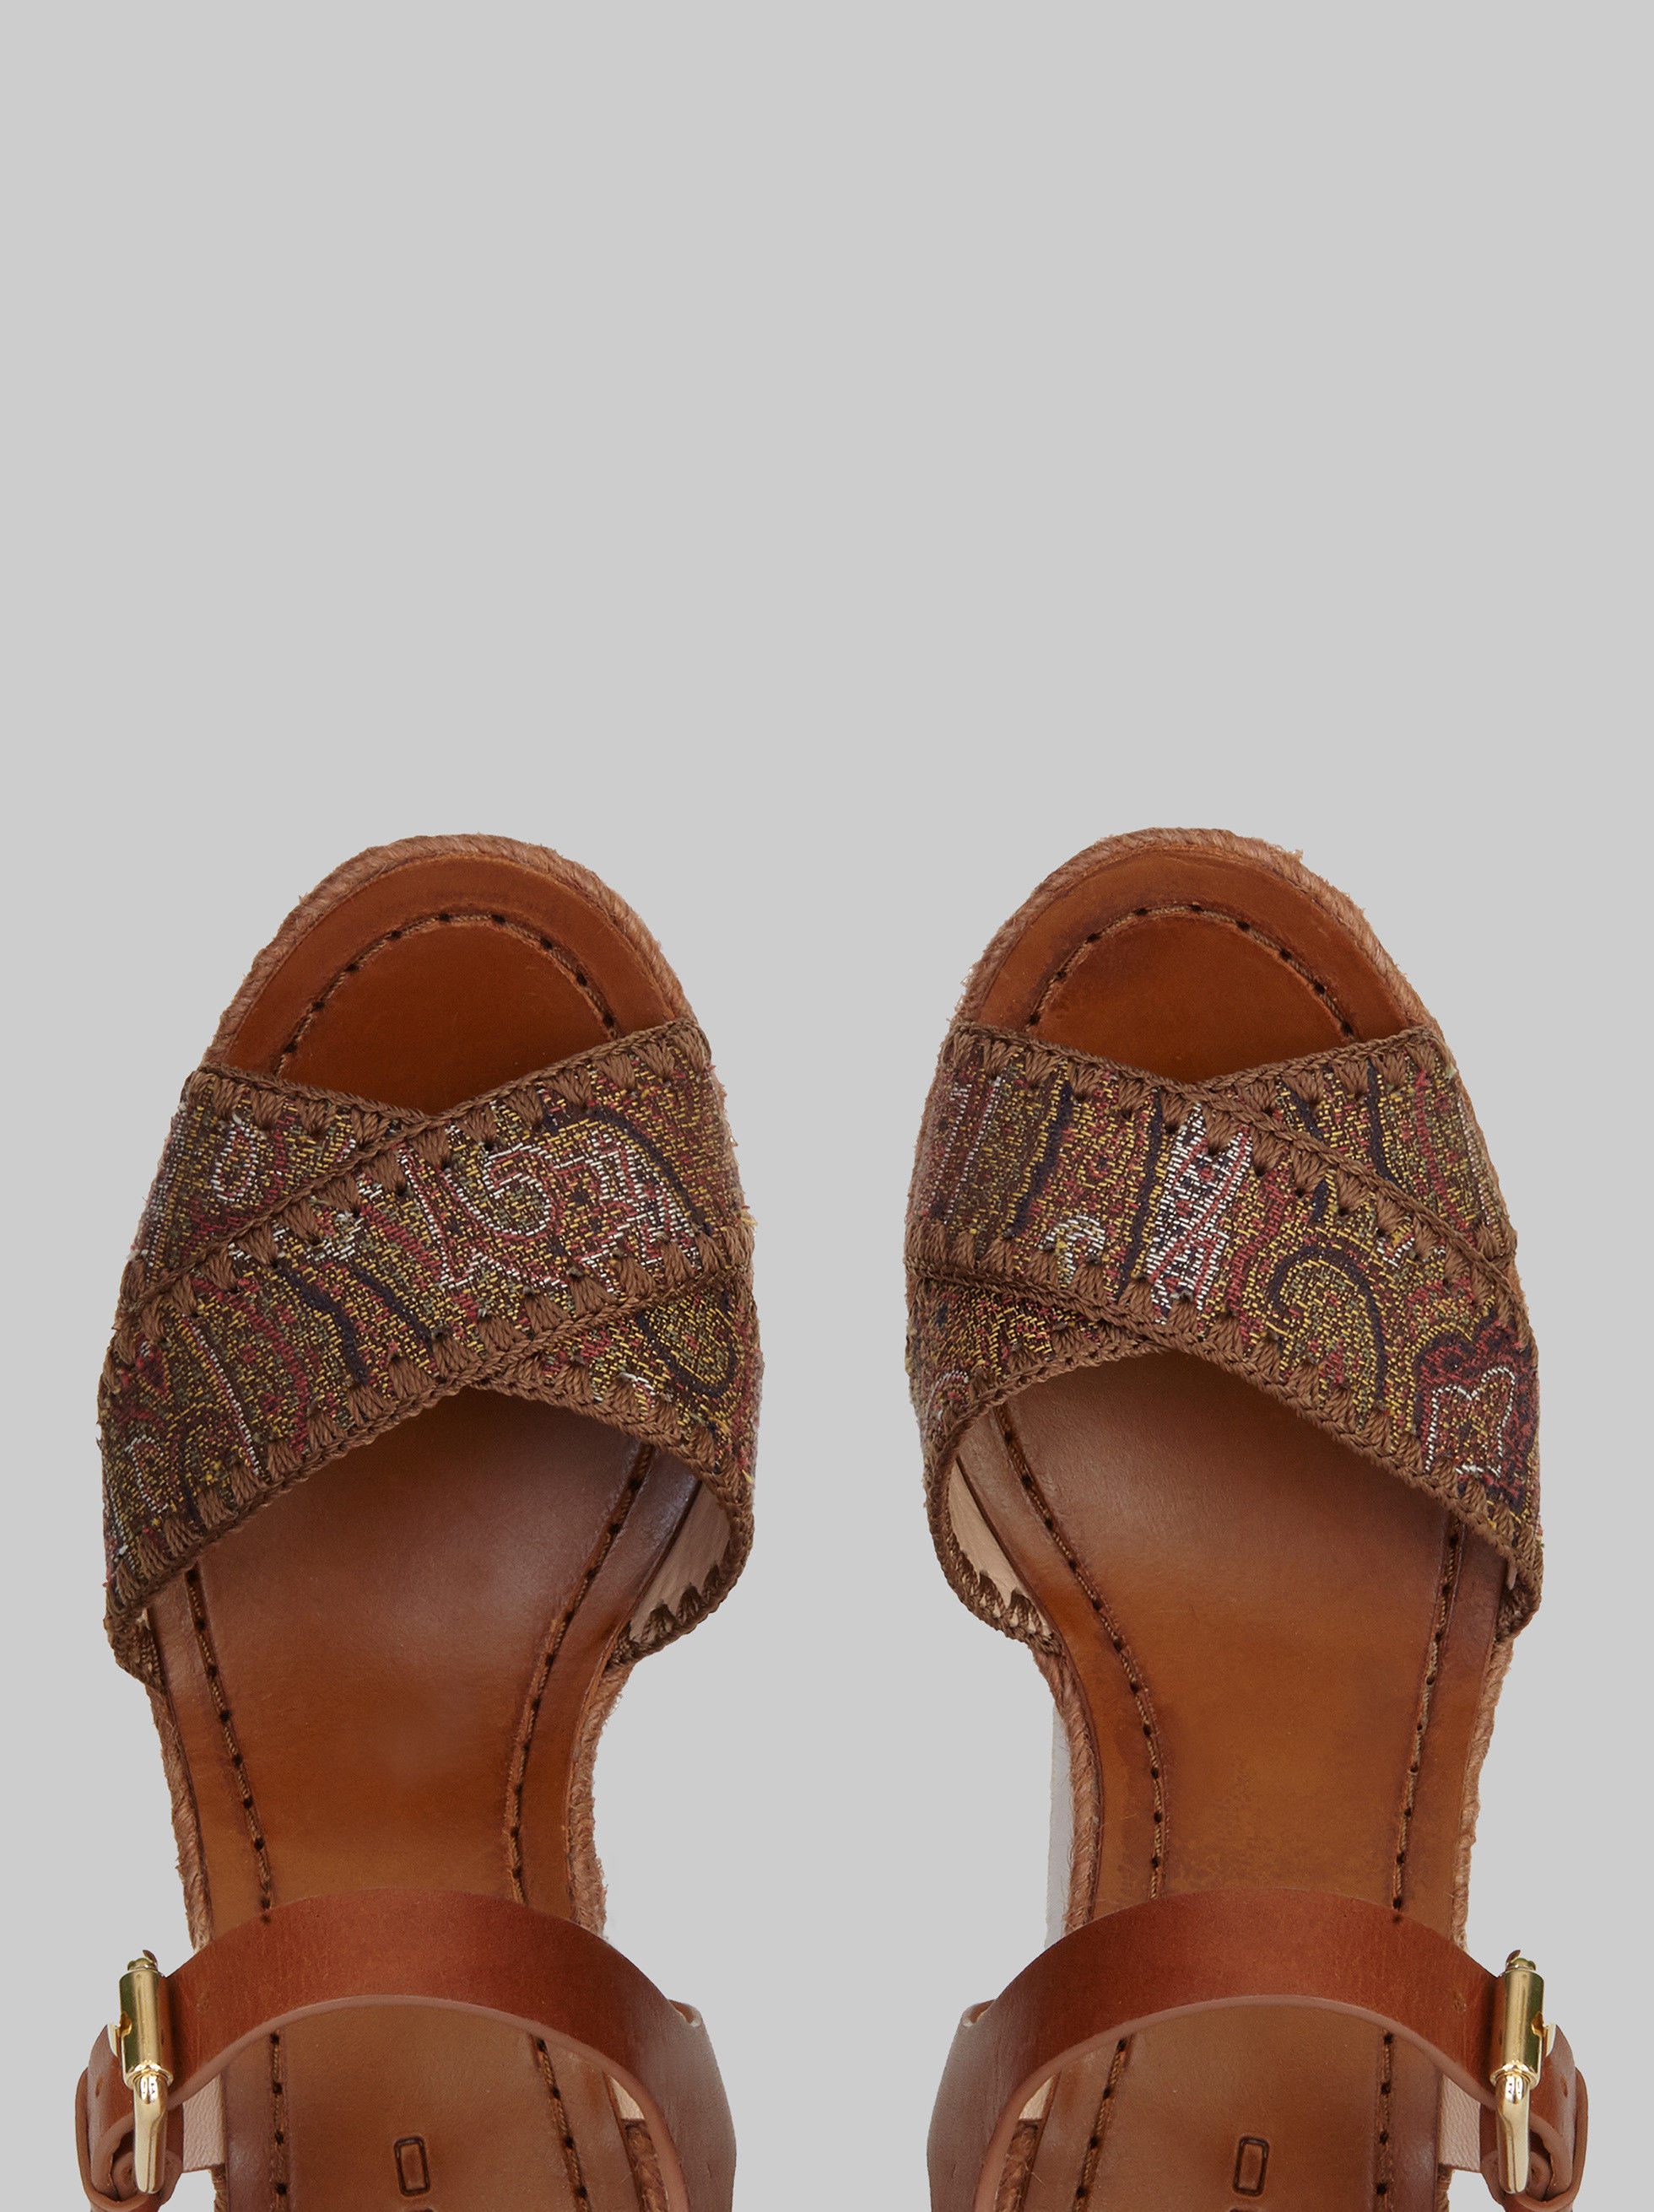 SANDALS WITH WOVEN WEDGE